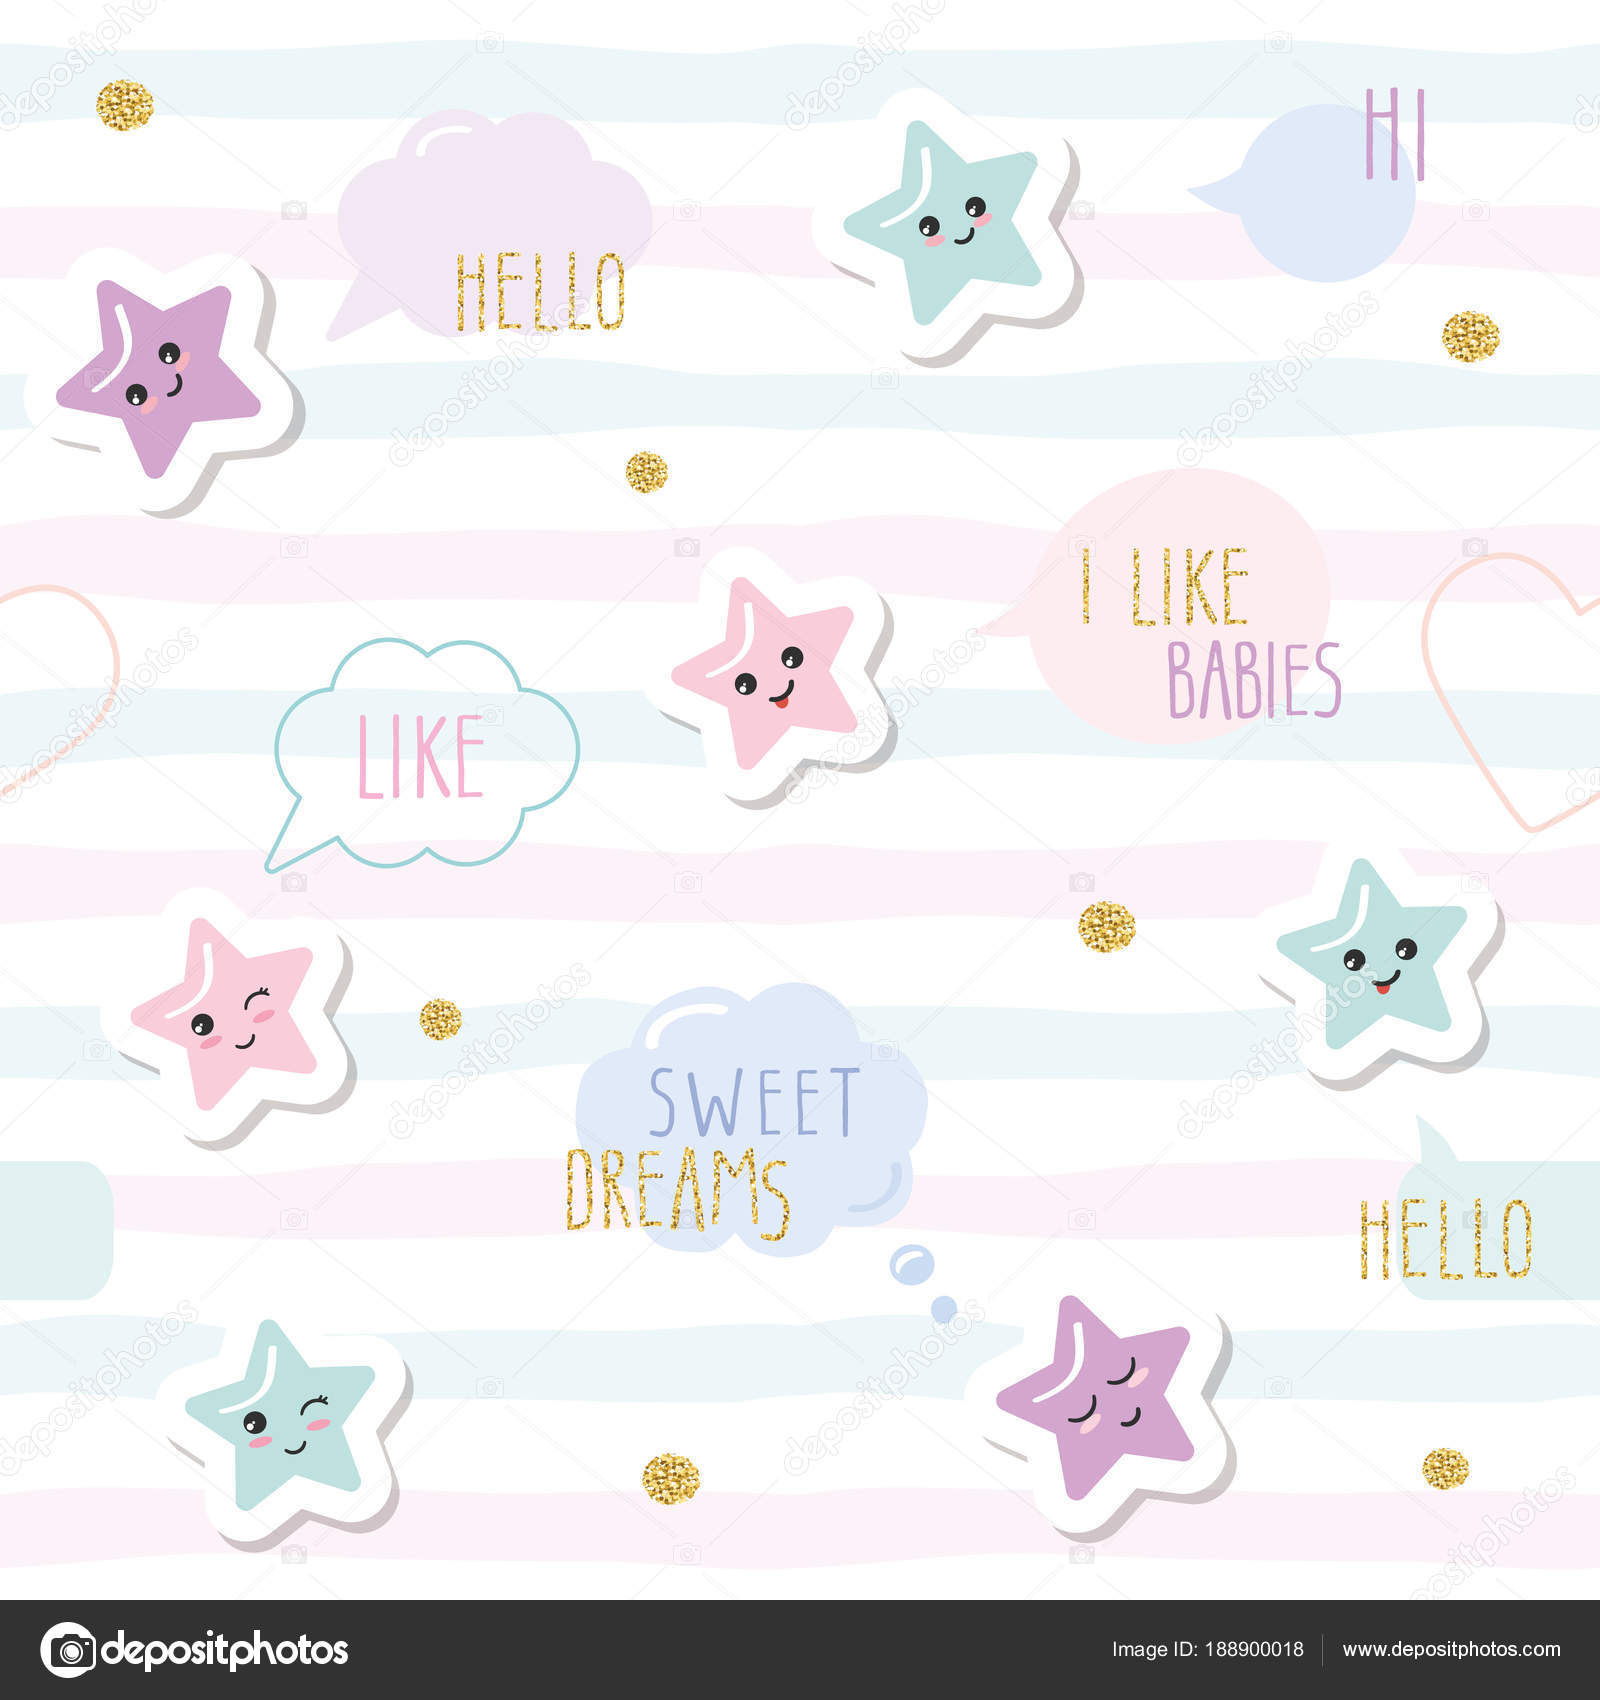 Cute Seamless Pattern Background With Cartoon Kawaii Stars And Speech  Bubbles. For Little Girls Babies Clothes, Pajamas, Baby Shower Design.